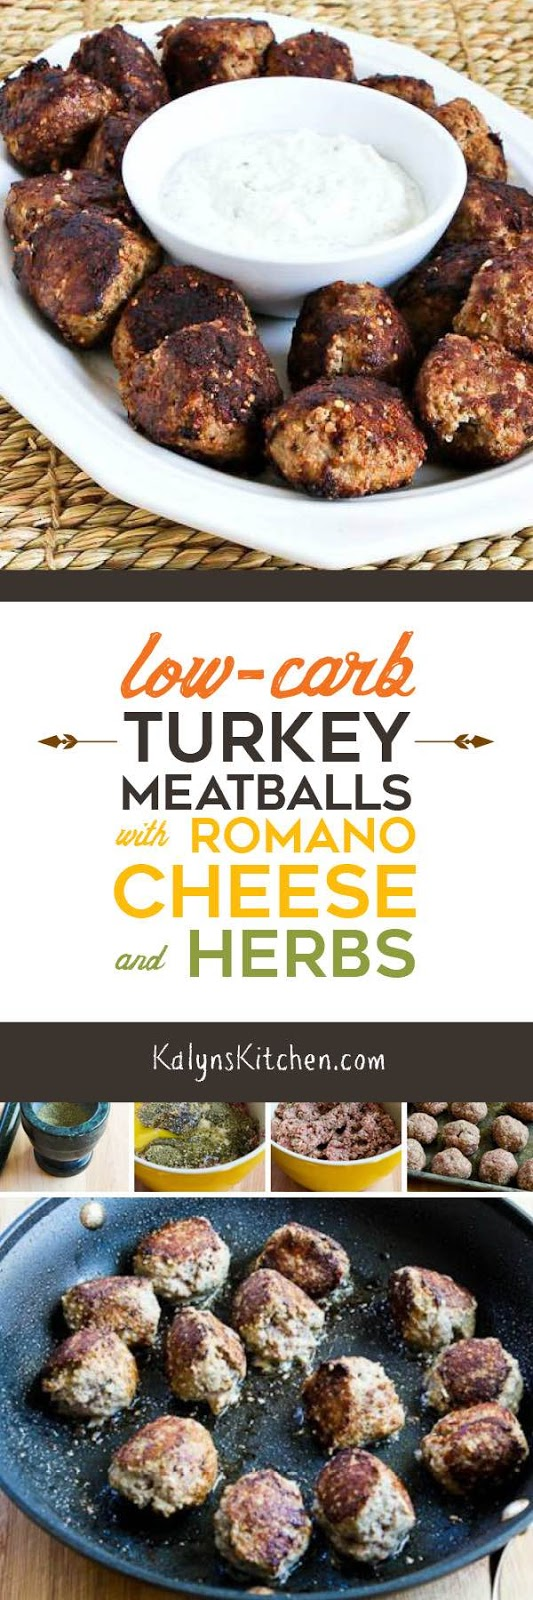 ... Kitchen®: Low-Carb Turkey Meatballs with Romano Cheese and Herbs